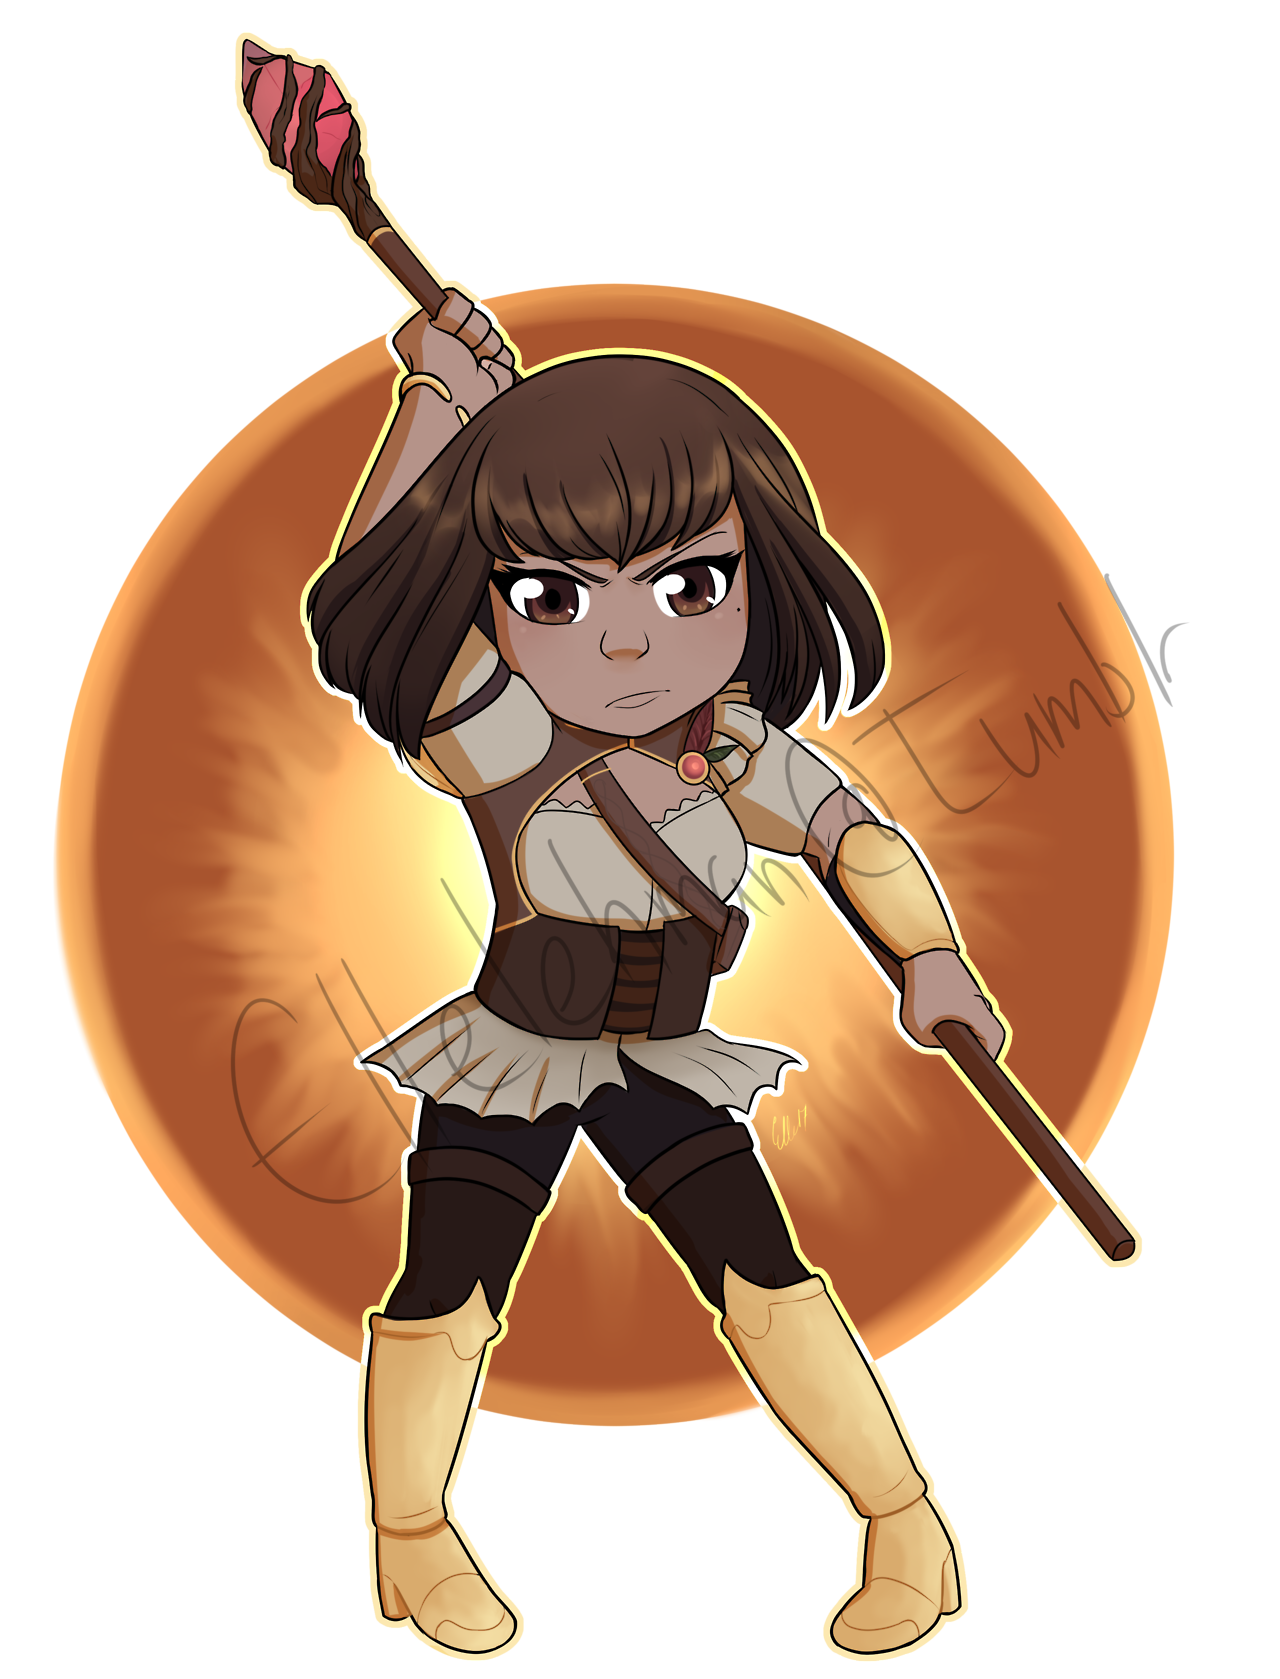 Transparent Chibi Commission of Amber from RWBY - #Amber #art #Chibi #Commission #DON'T #Ellelehman #Ellieart #Fall #Maiden #Maidens #my #REPOST #RT #RWBY #work